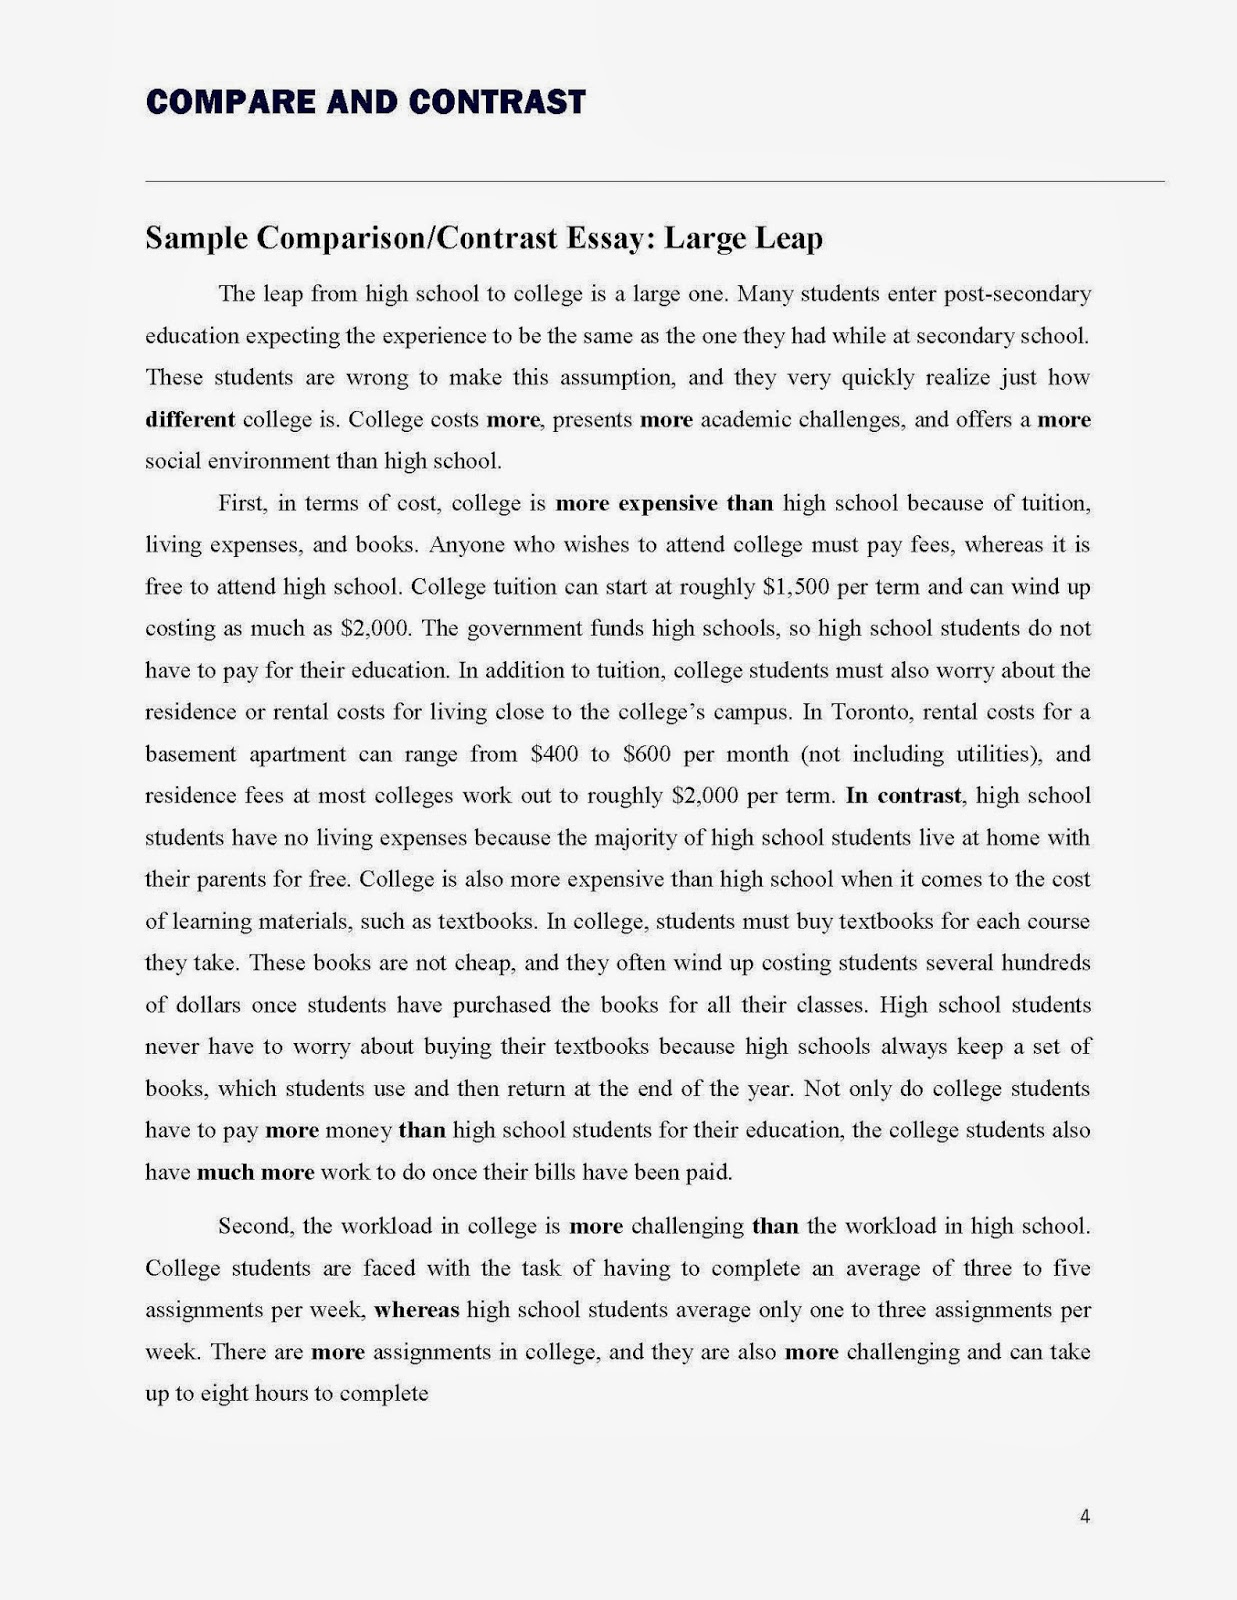 011 Compare And Contrast Essay Compareandcontrastessay Page 4h125 Frightening Examples Elementary Outline For Middle School Introduction Full